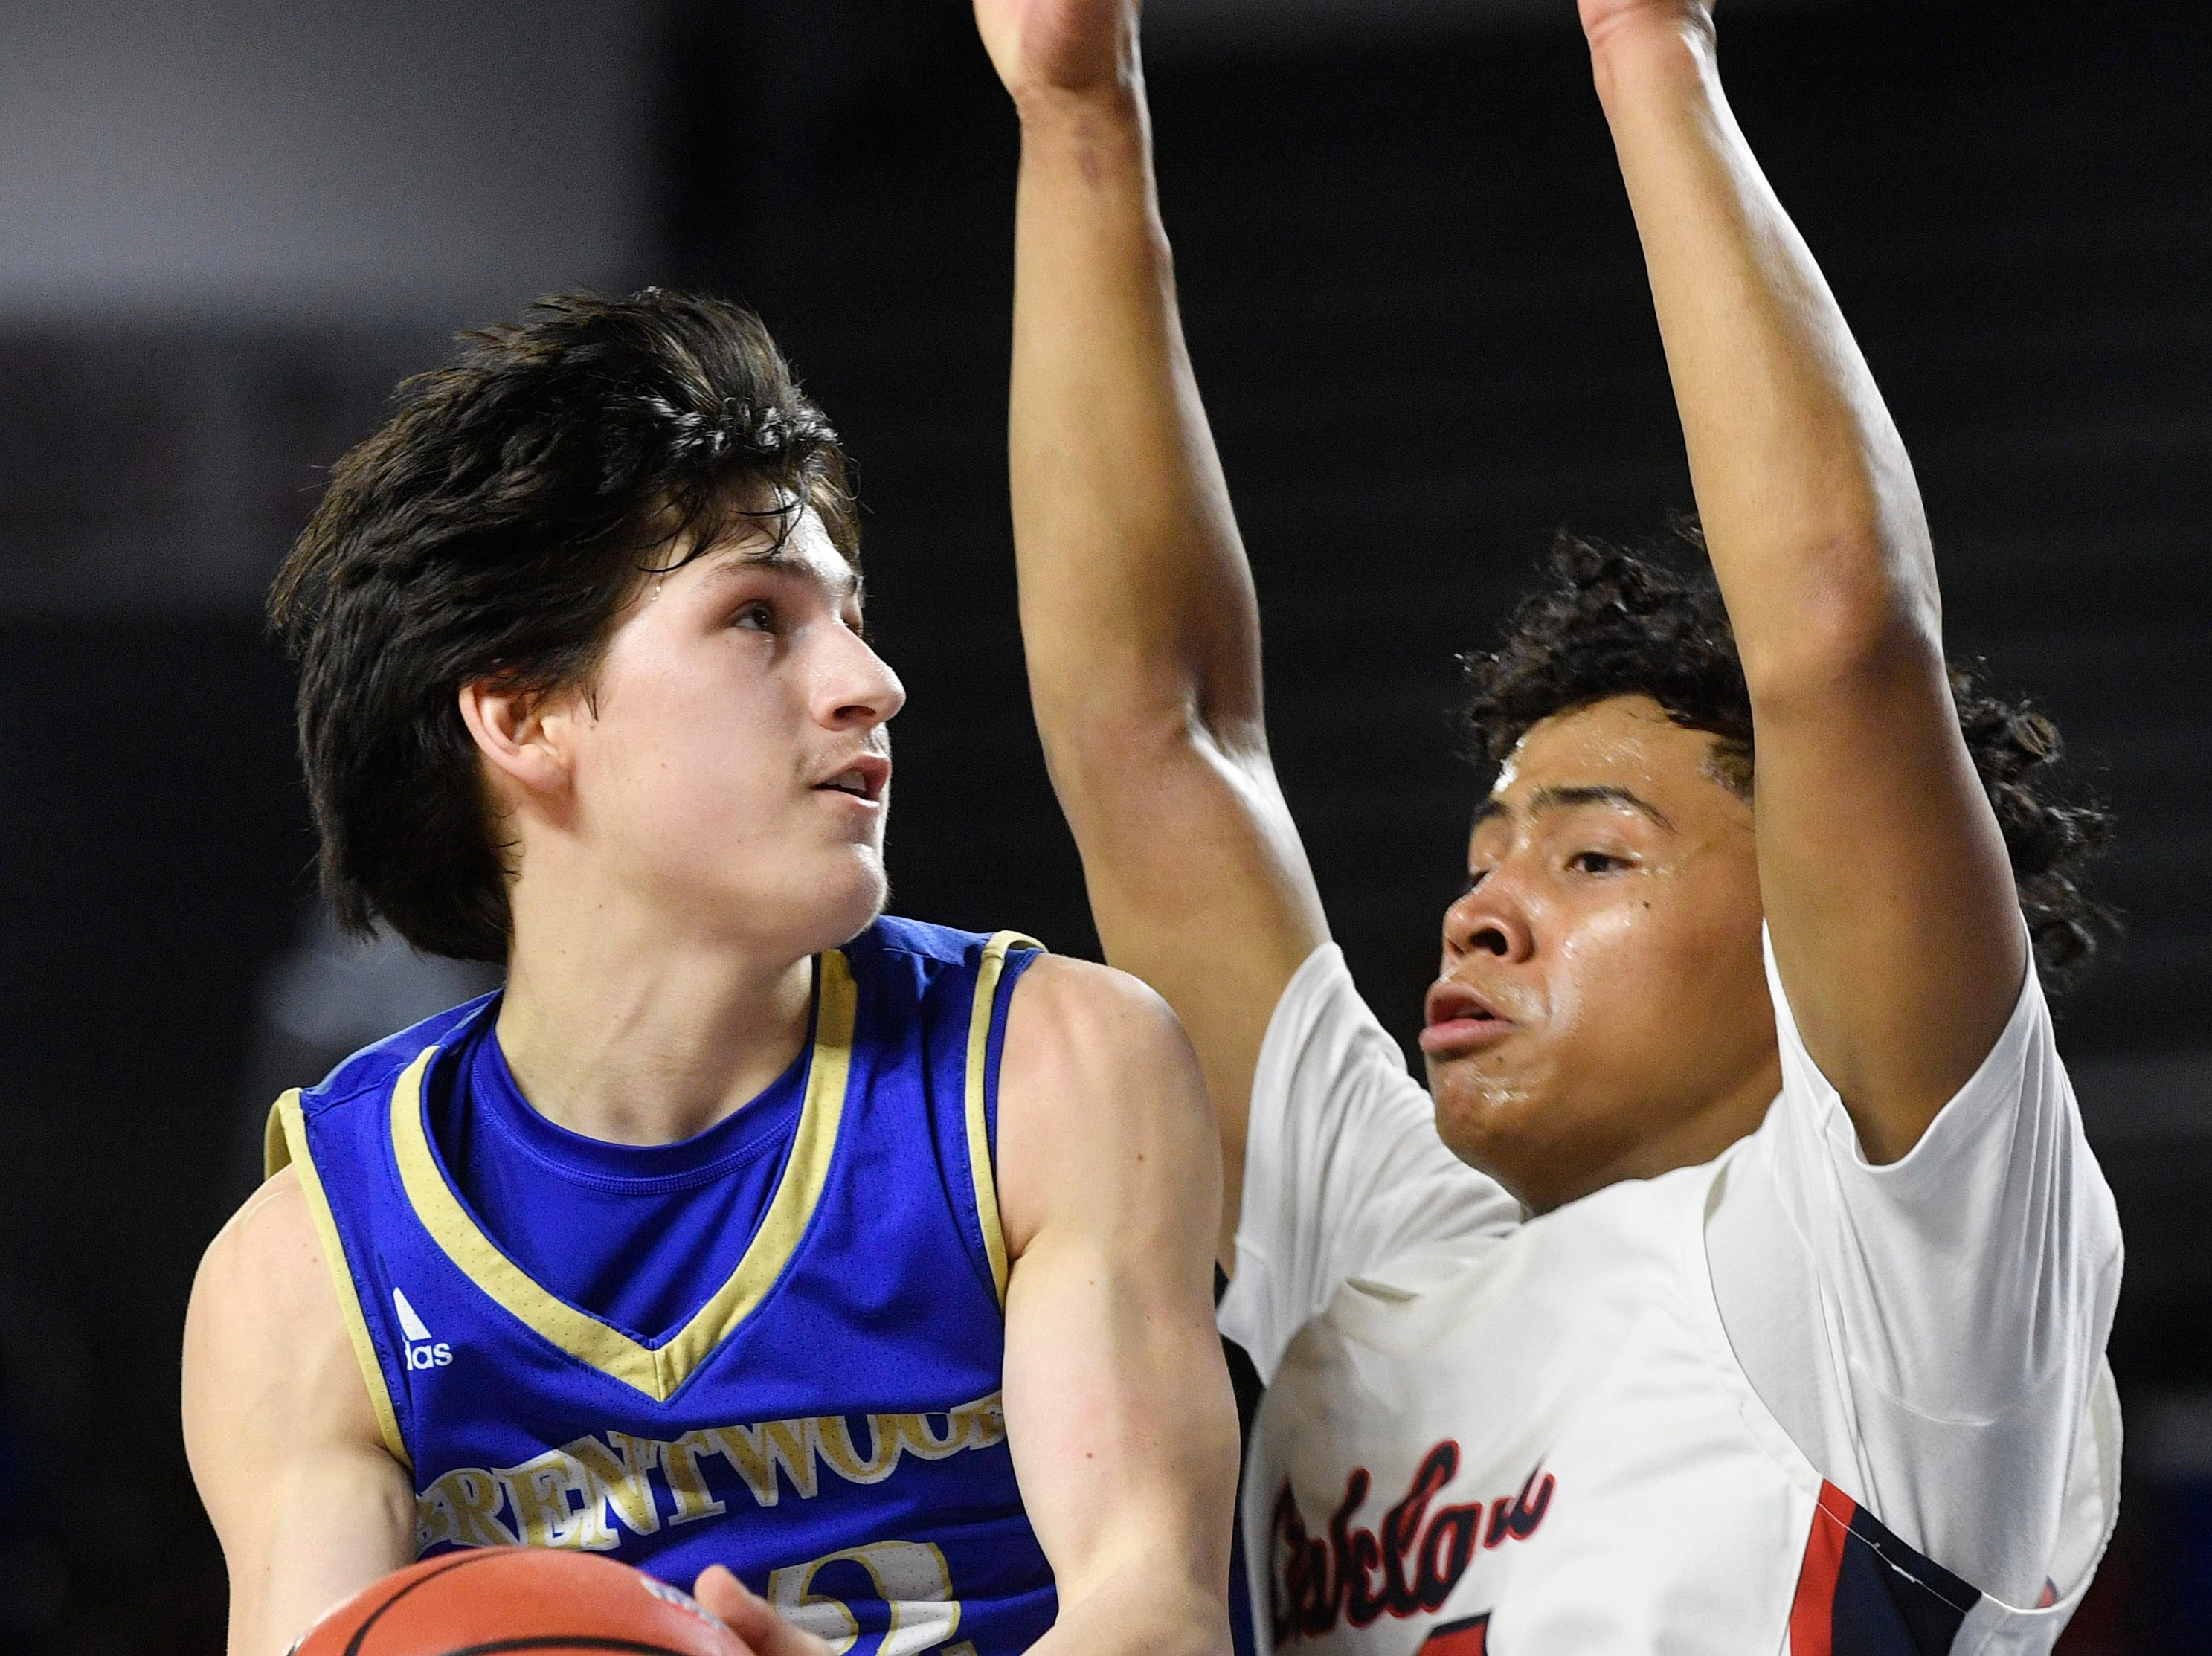 Brentwood's Preston Moore (12) attempts to bet by Oakland's Jaden Jamison (24) as Brentwood plays Oakland in the TSSAA Class AAA quarterfinals Thursday, March 14, 2019, in Murfreesboro, Tenn.